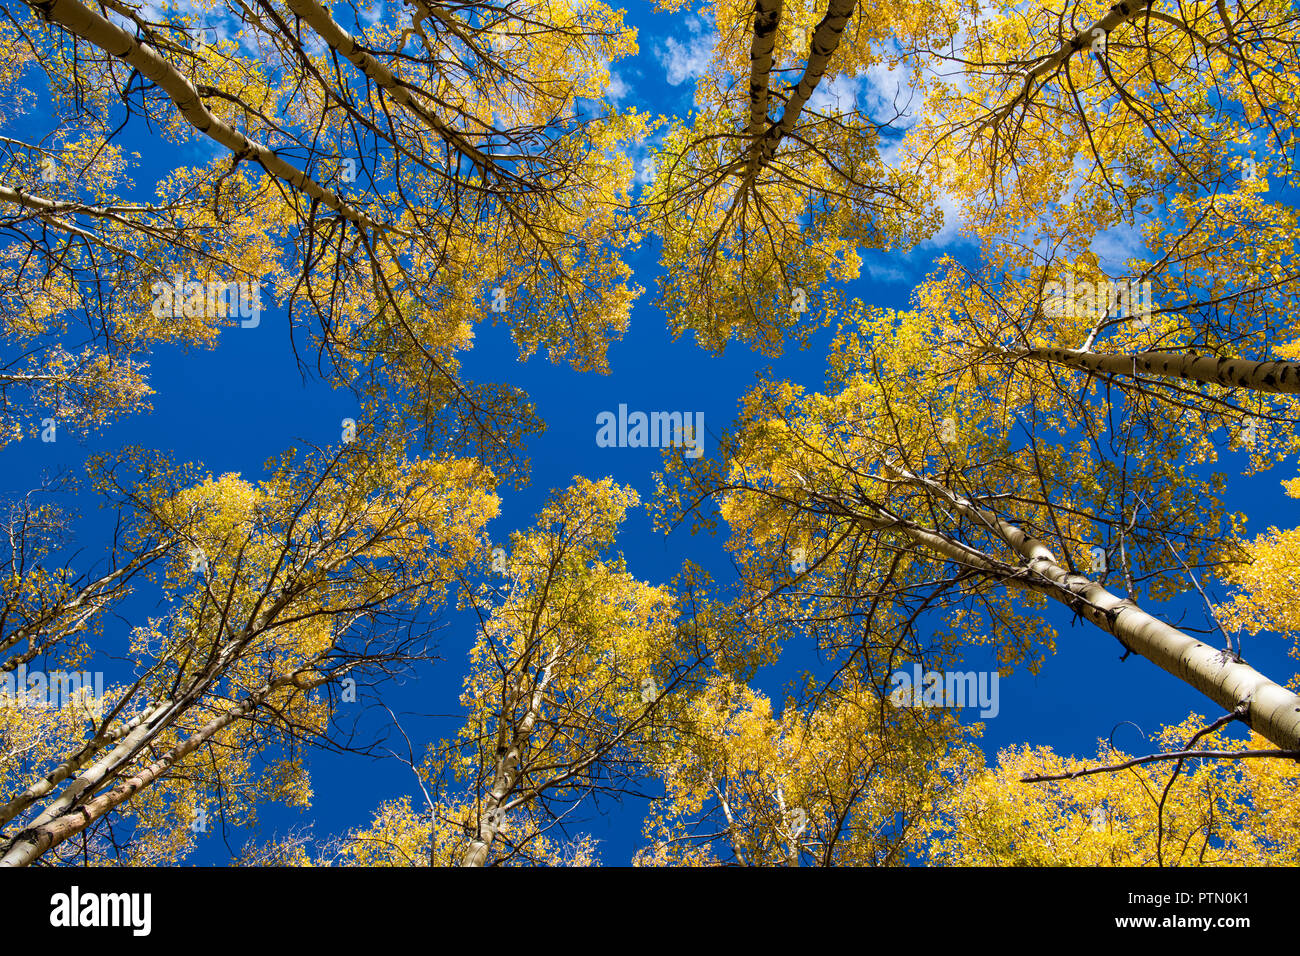 View looking up to the tops of aspen trees with golden yellow foliage under a brilliant blue sky - Stock Image